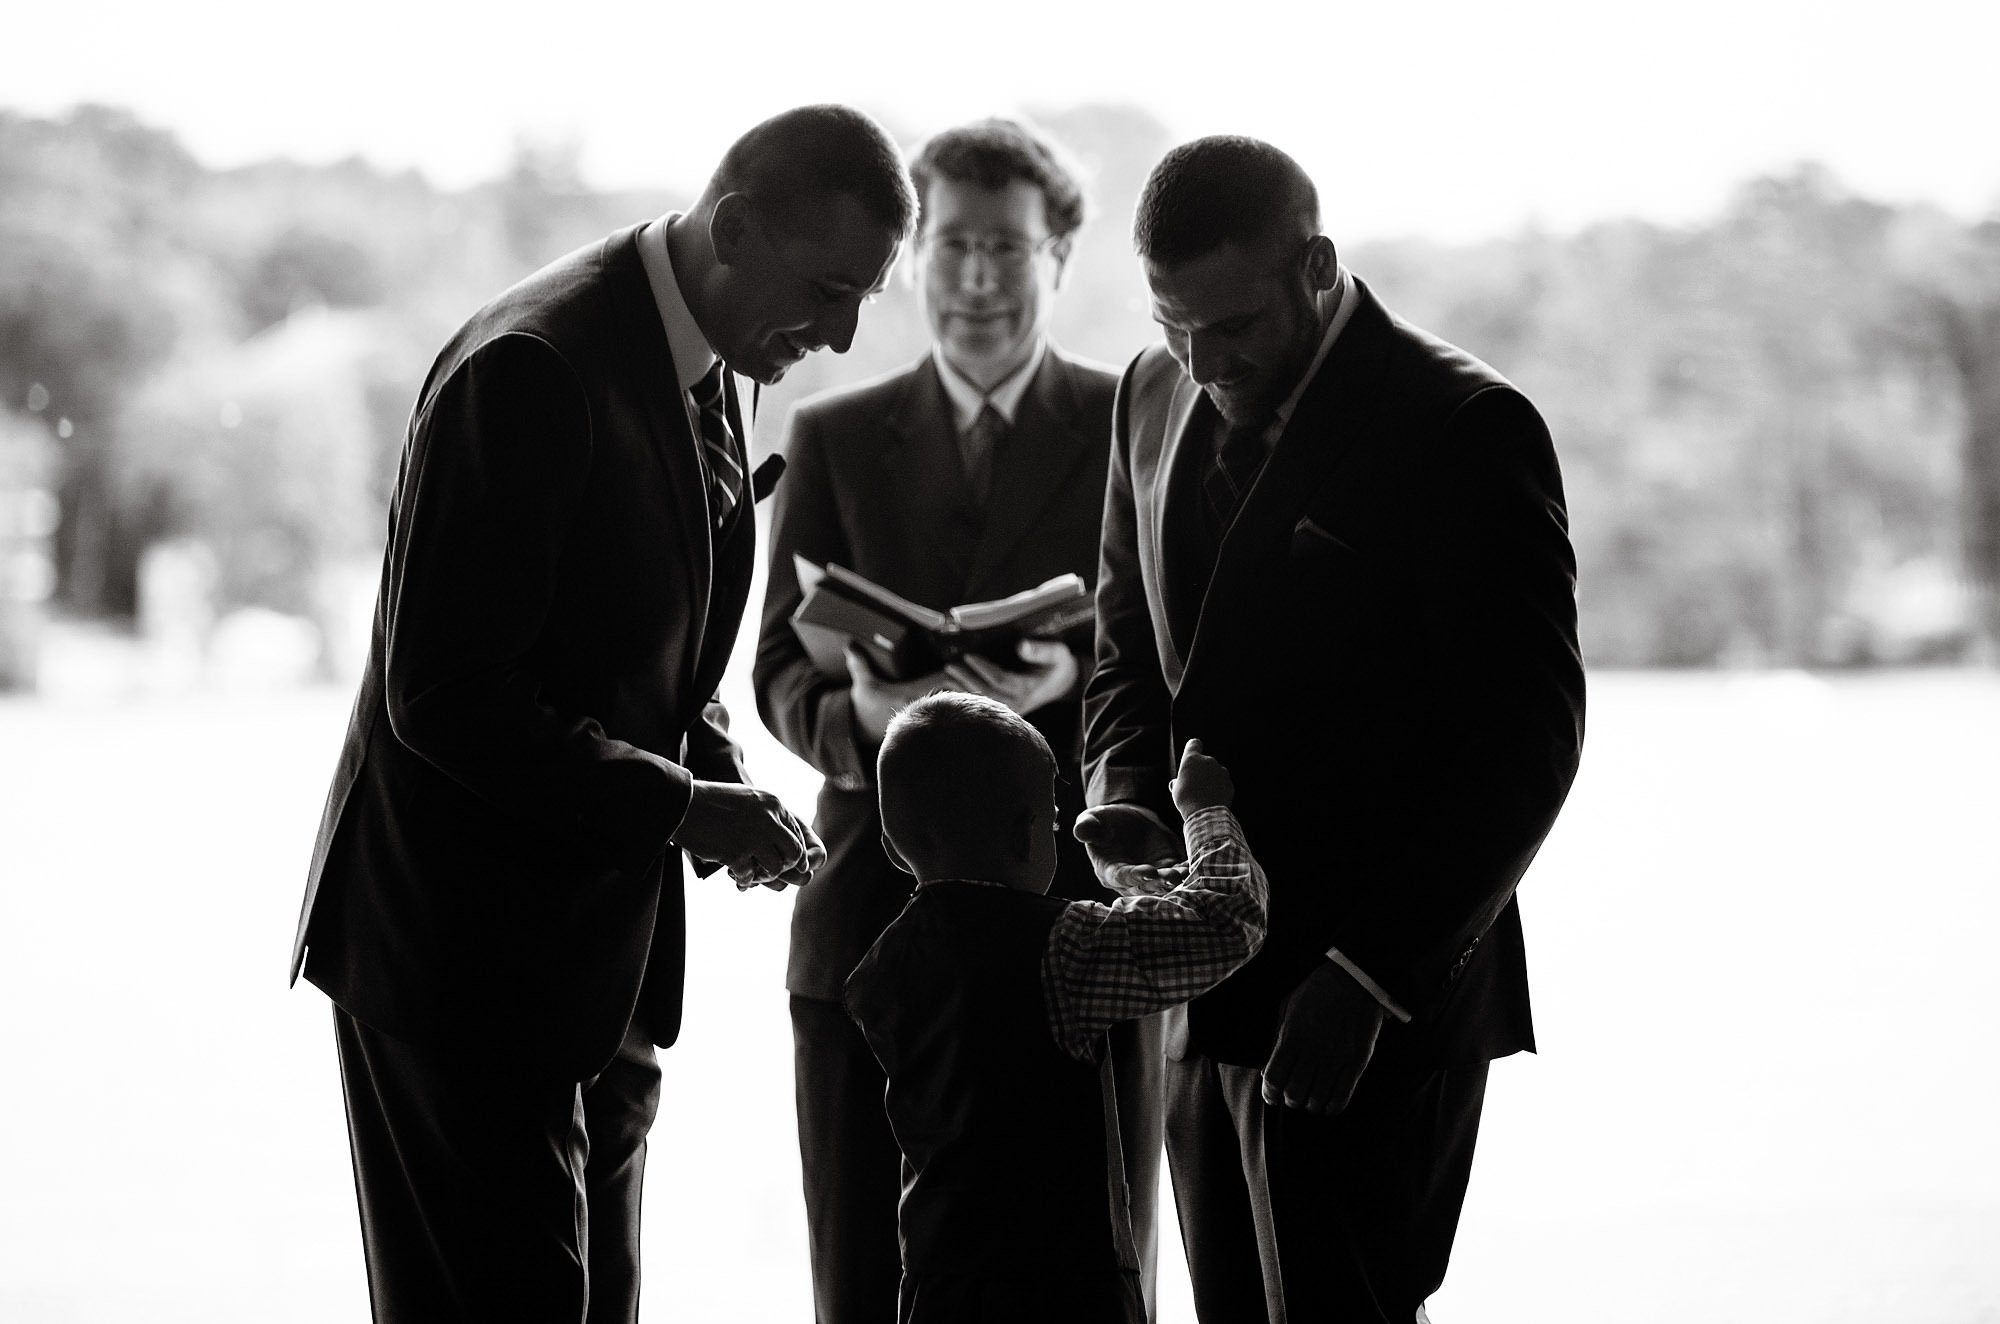 Lake Pearl Wrentham Wedding  I  The grooms take their wedding rings from the ring bearer during the ceremony.